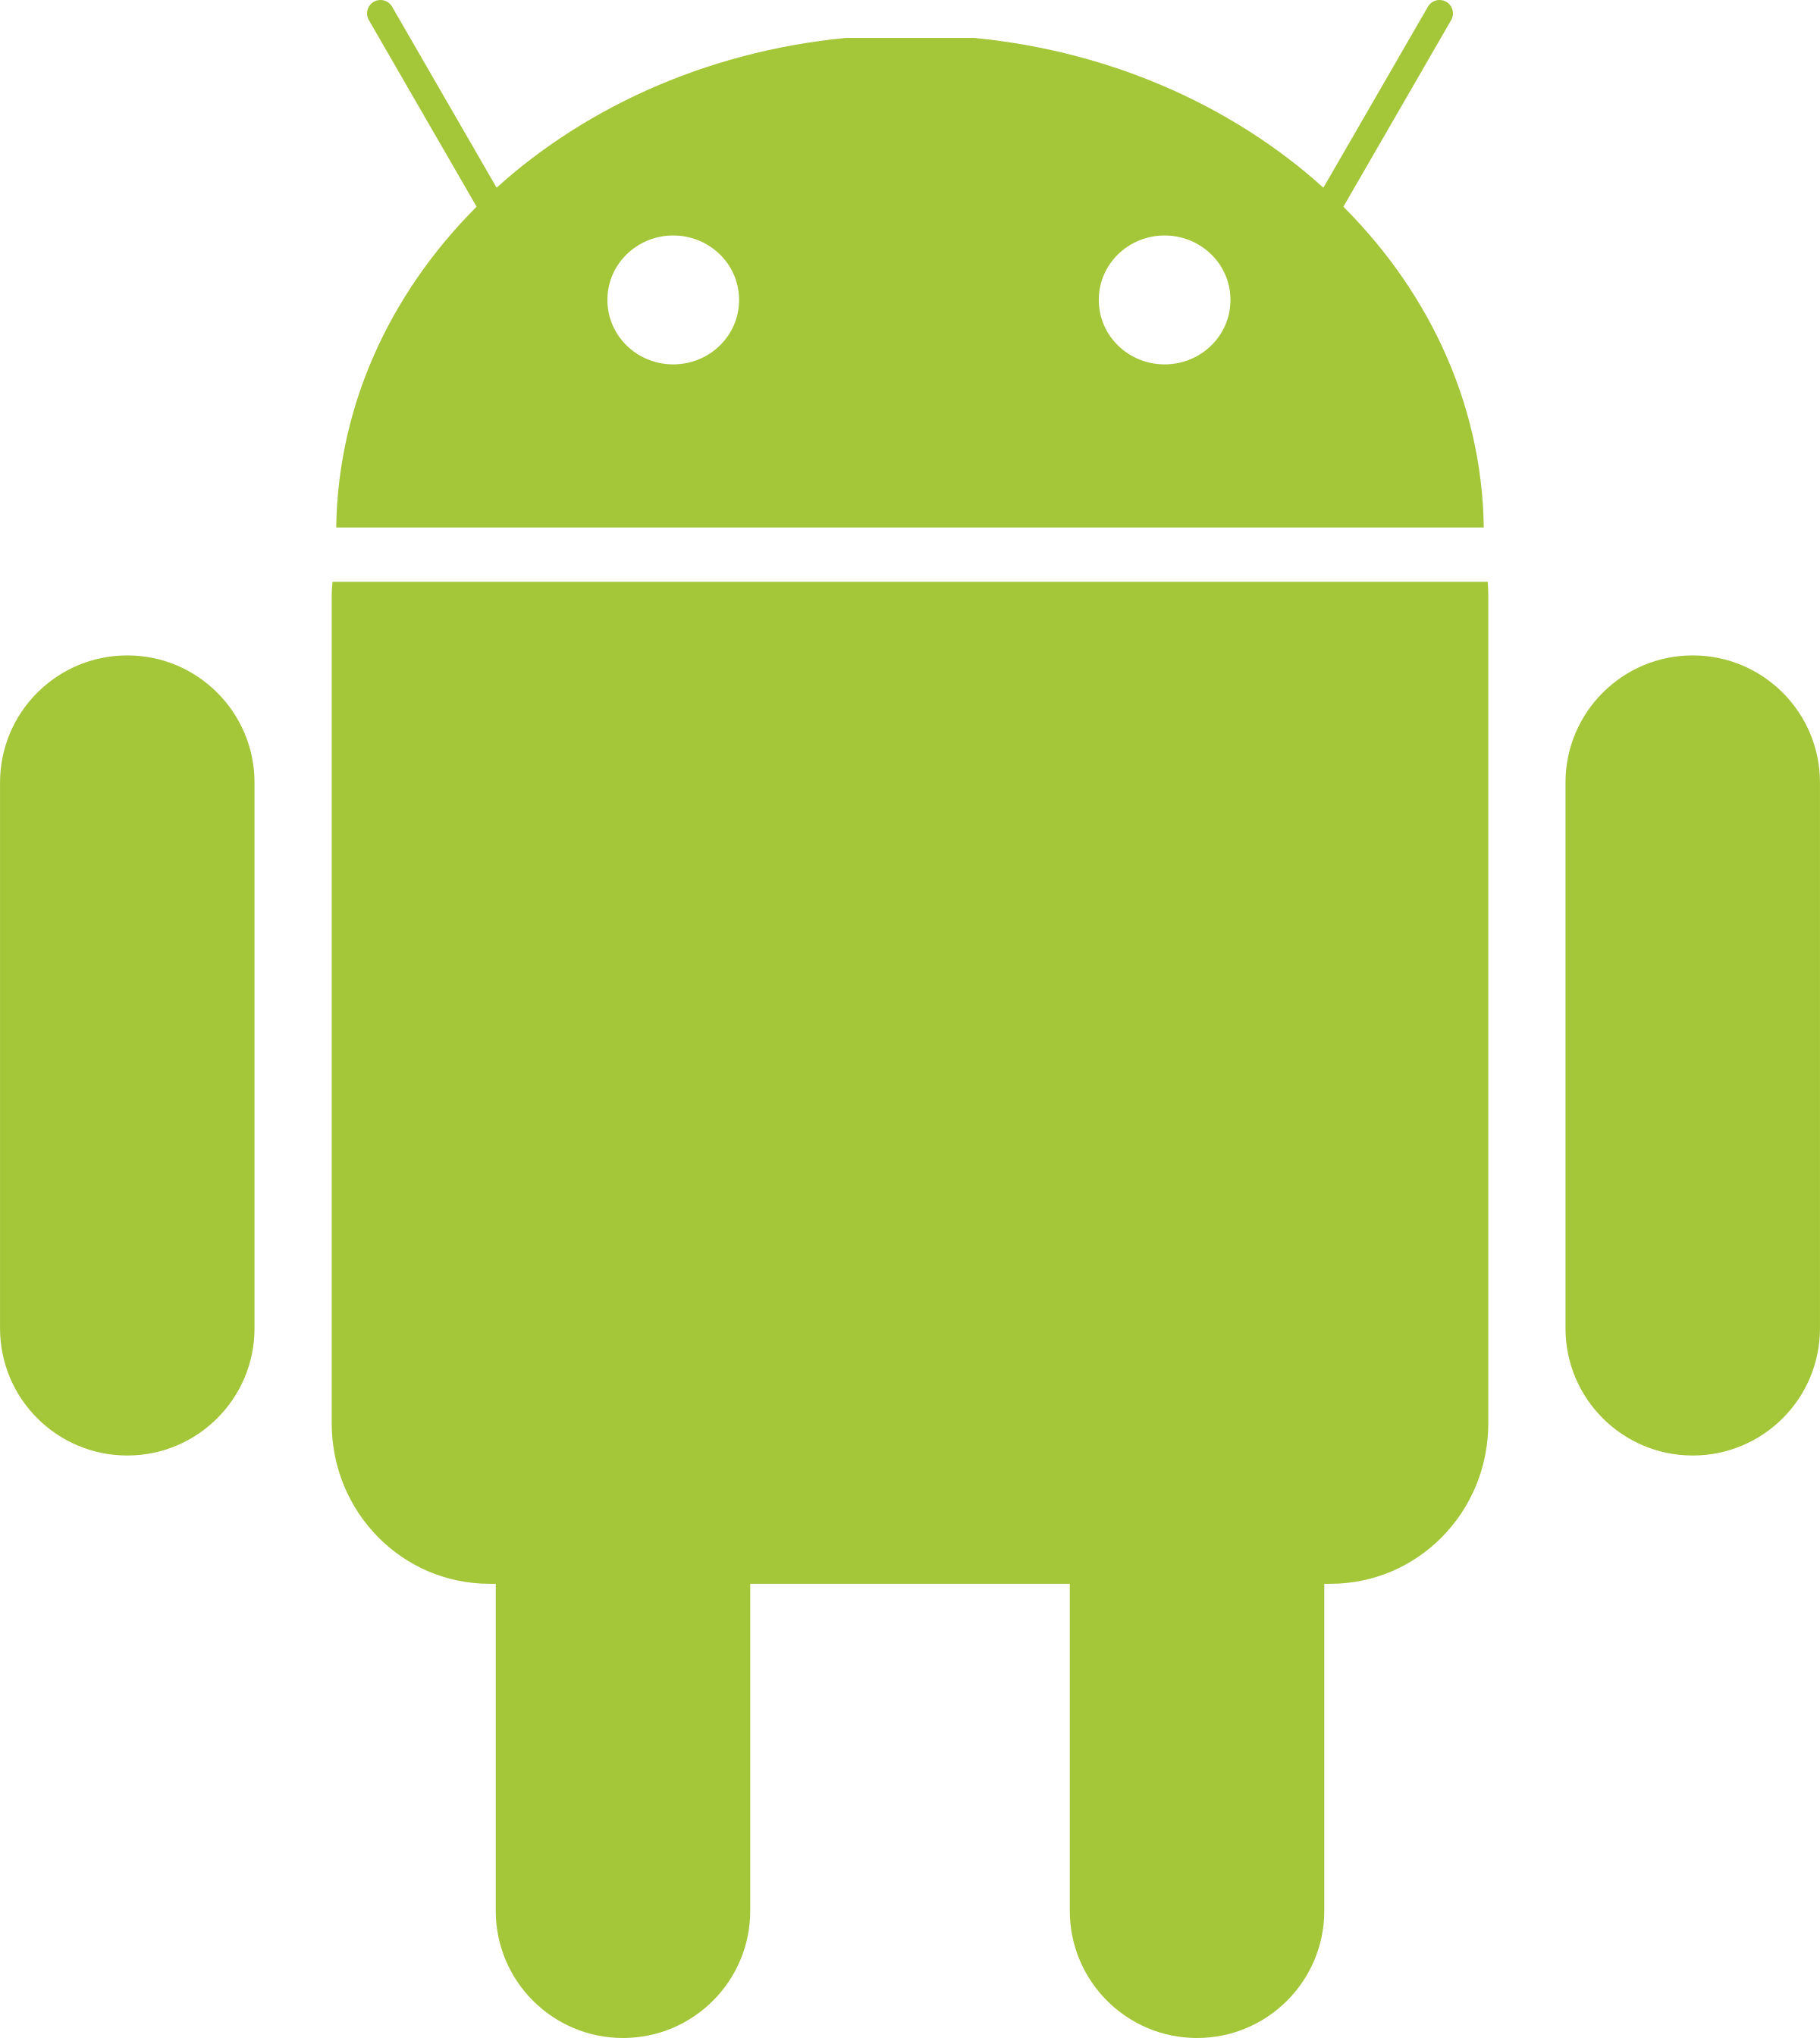 Logo transparent svg vector. Android image png image